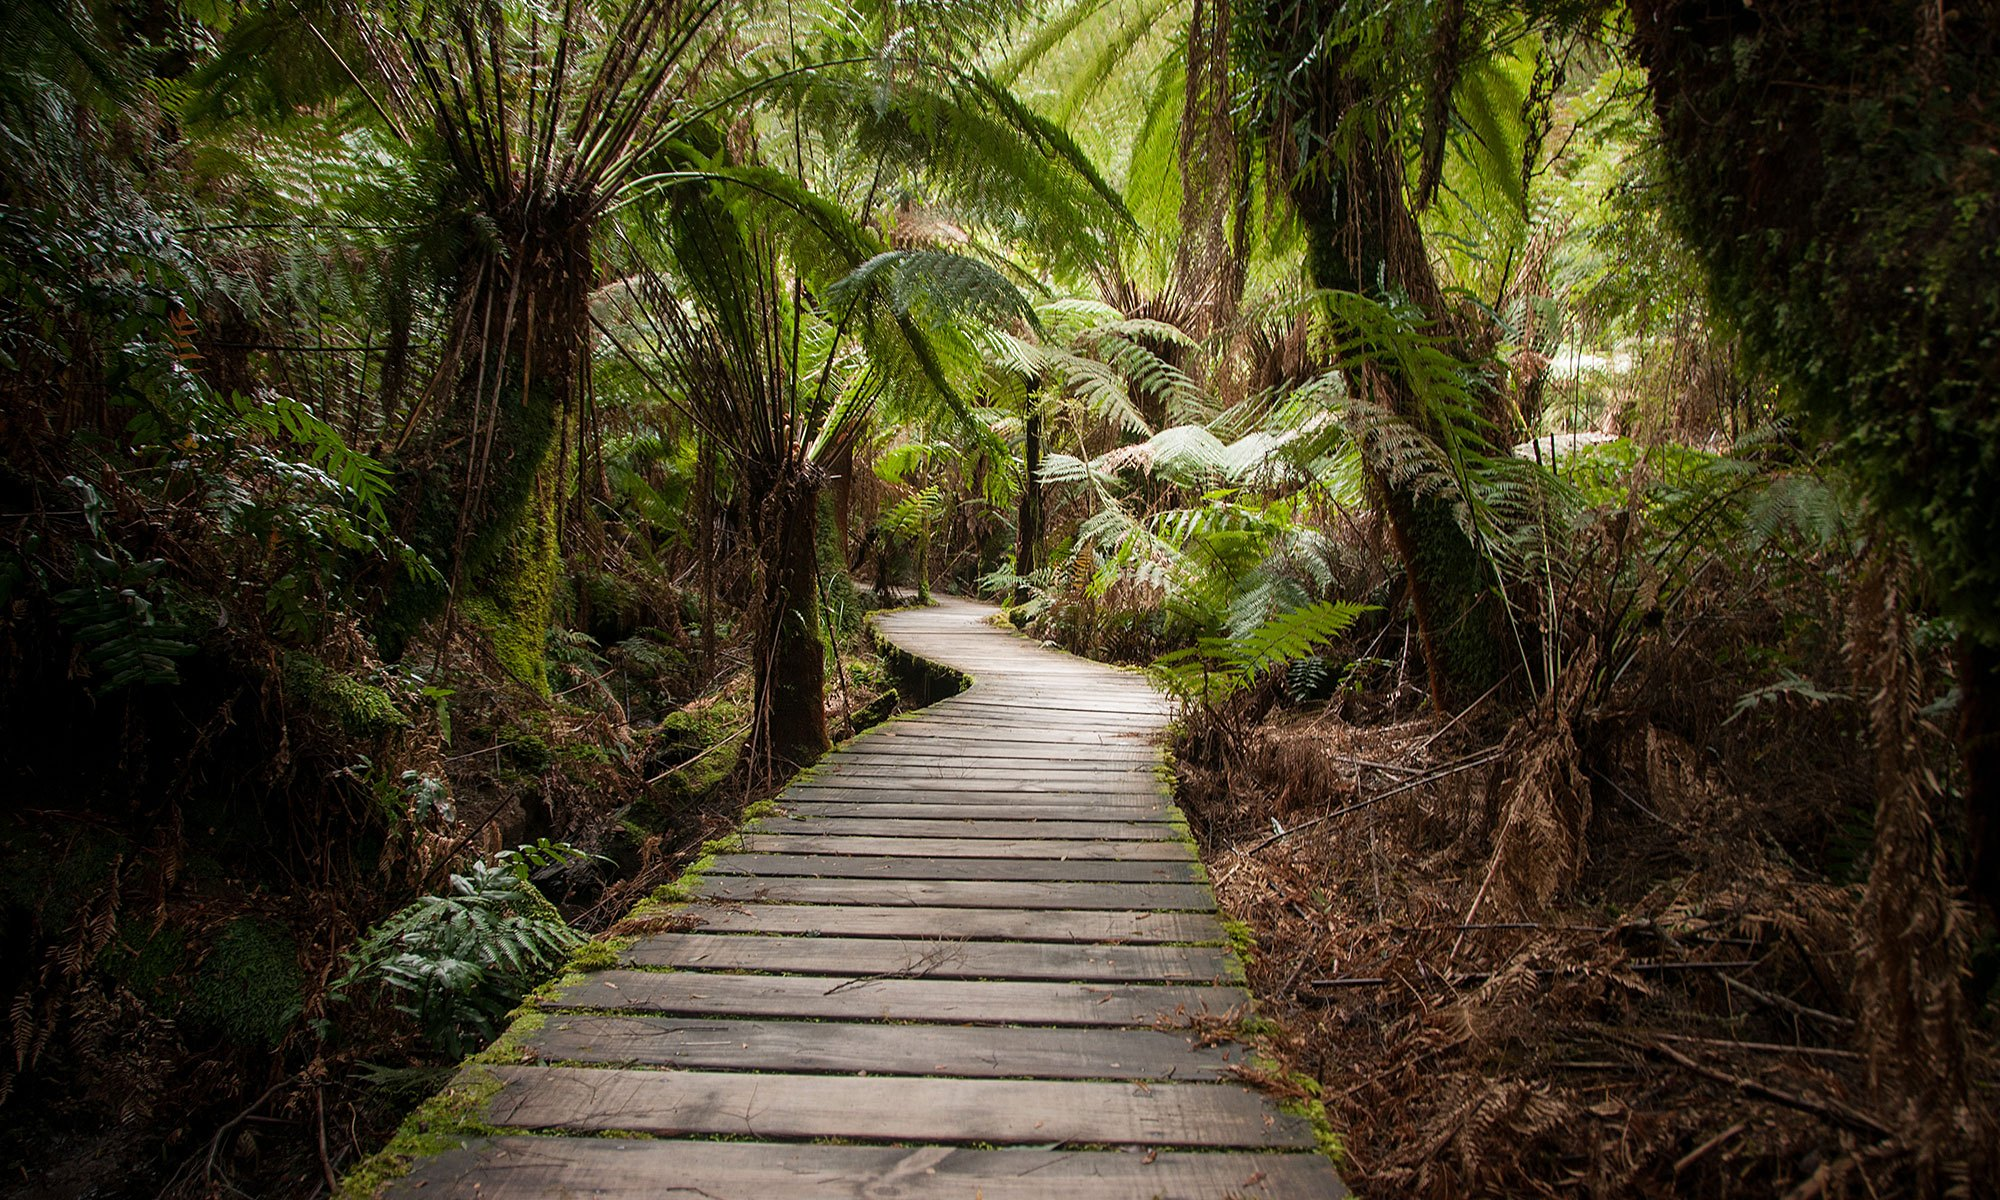 Boardwalk through the Rainforest